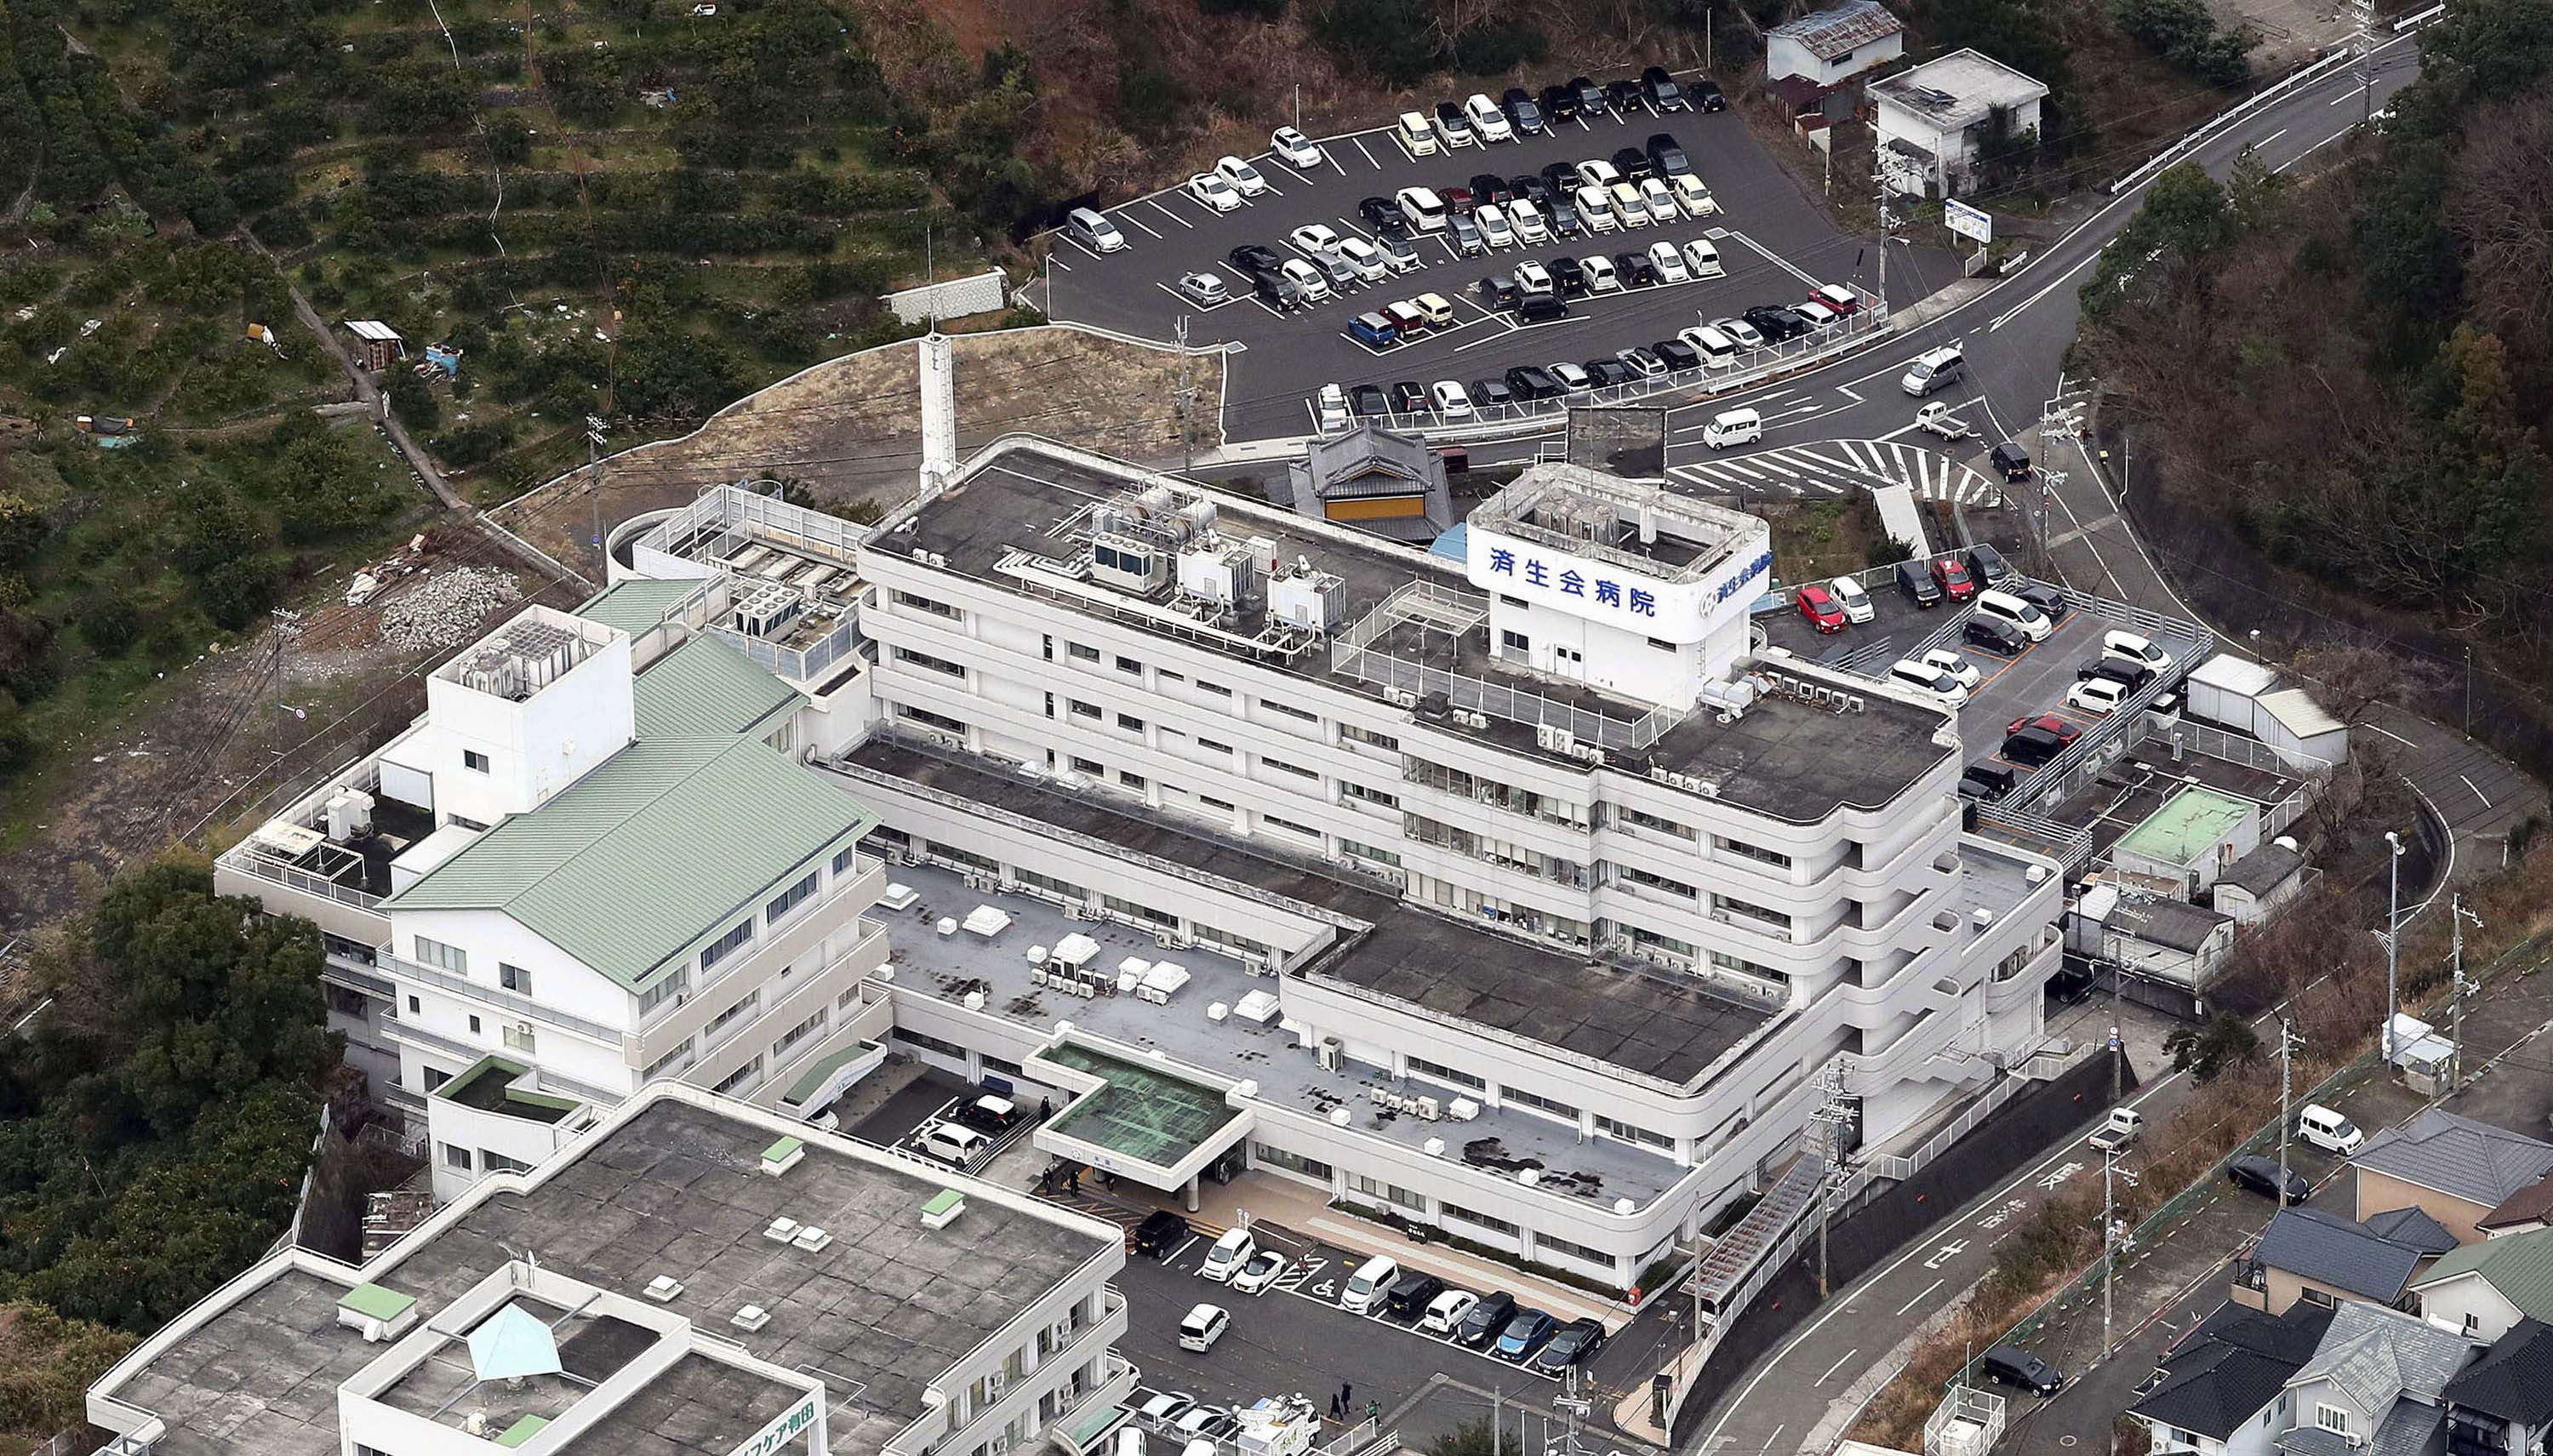 An aerial view shows Saiseikai Arida Hospital in Yuasa, Japan, where a doctor was confirmed to have been infected with the novel coronavirus.